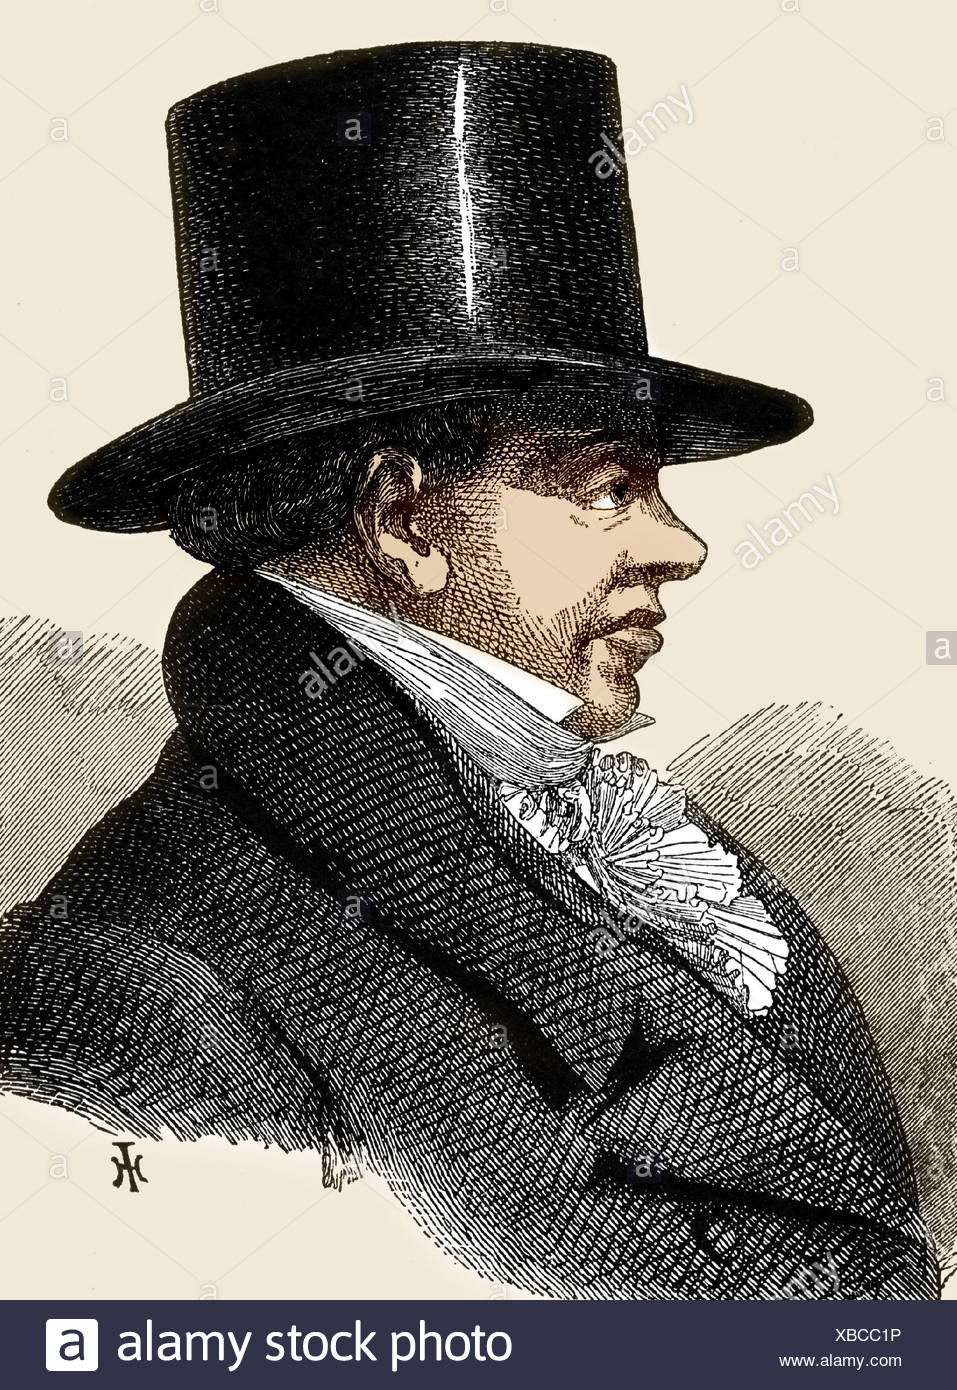 Rothschild, Nathan Mayer, 16.9.1777 - 18.7.1836, German businessman, portrait, side view, engraving, 19th century, Additional-Rights-Clearances-NA - Stock Image